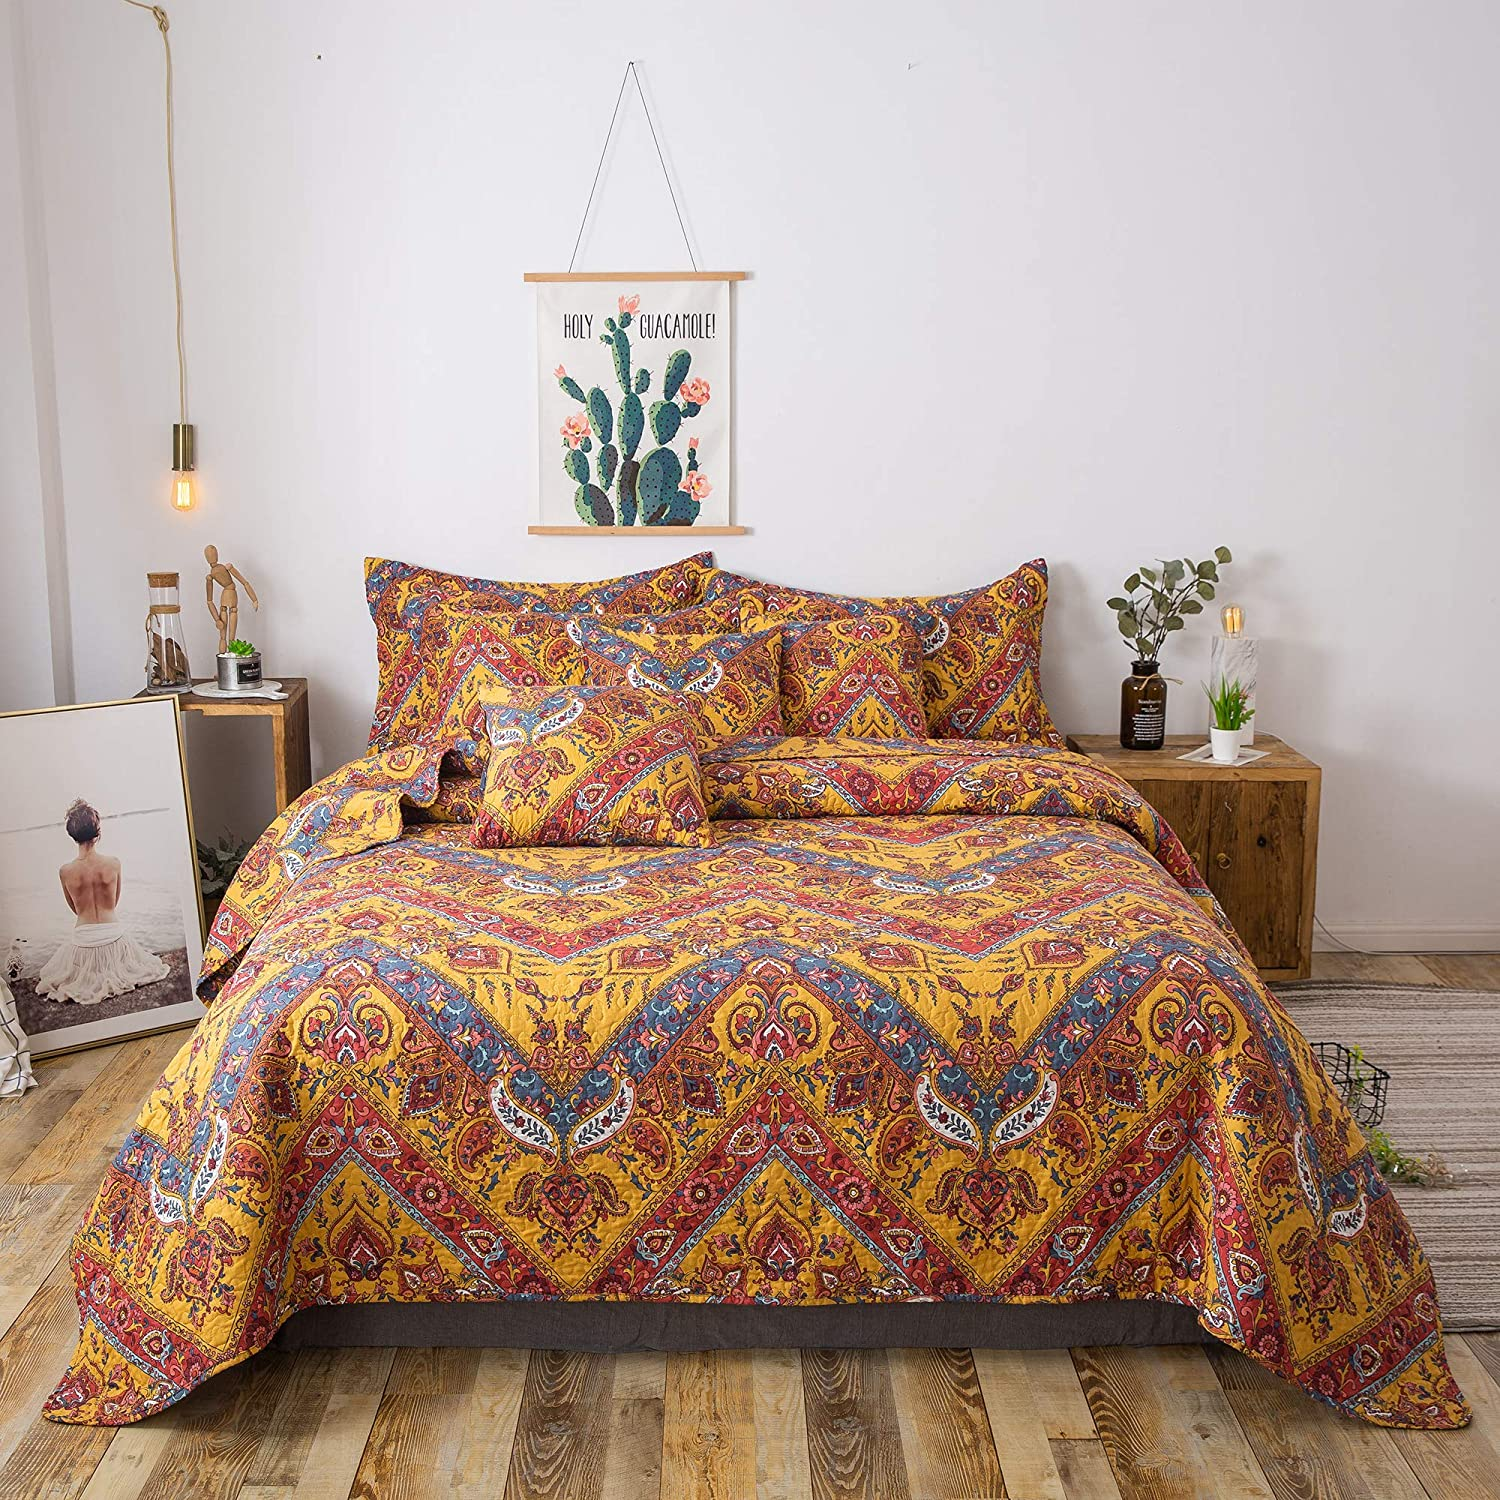 Tache 3 Piece Hanging Gardens Yellow orange Chevron Bohemian Quilted Bedspread Coverlet Quilt Set, Full